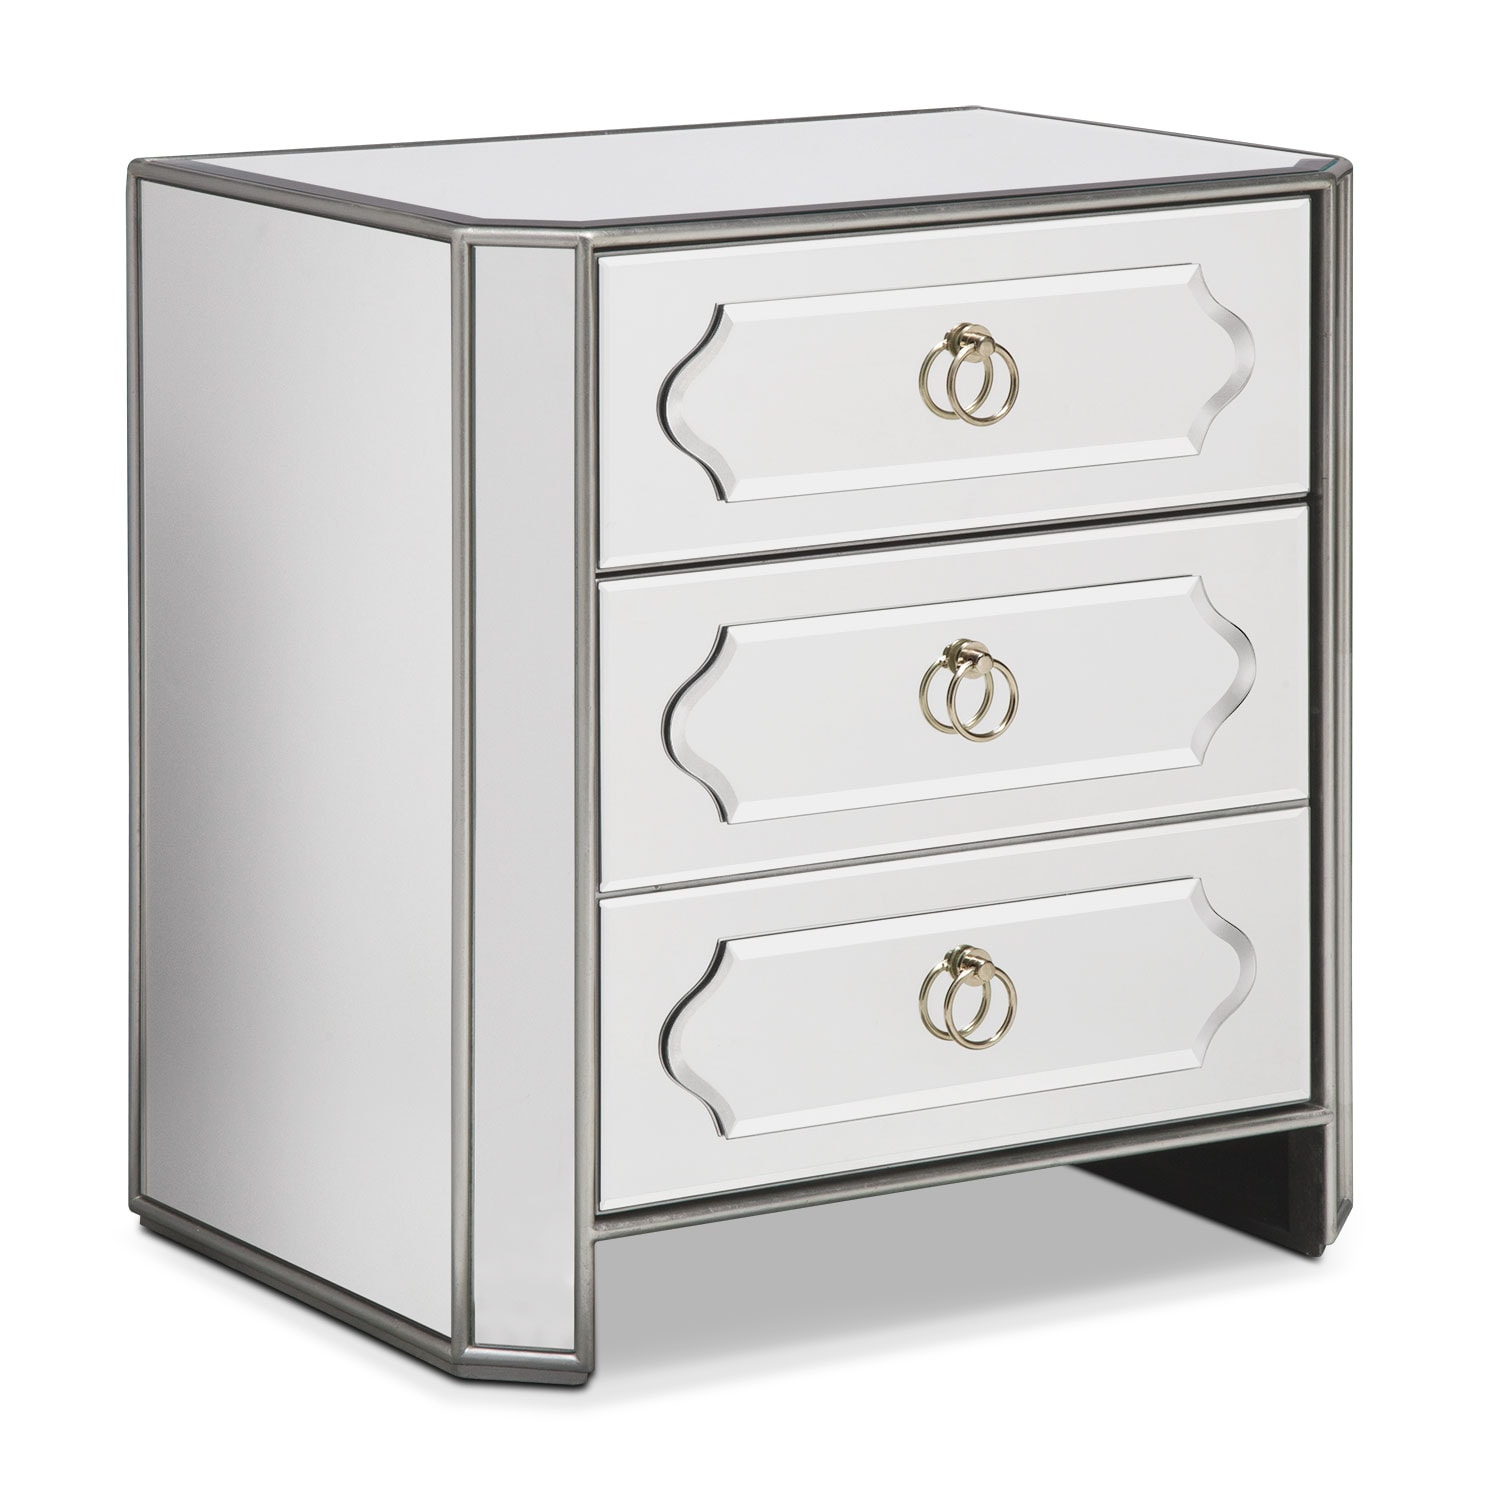 Harlow Bedside Chest - Mirrored